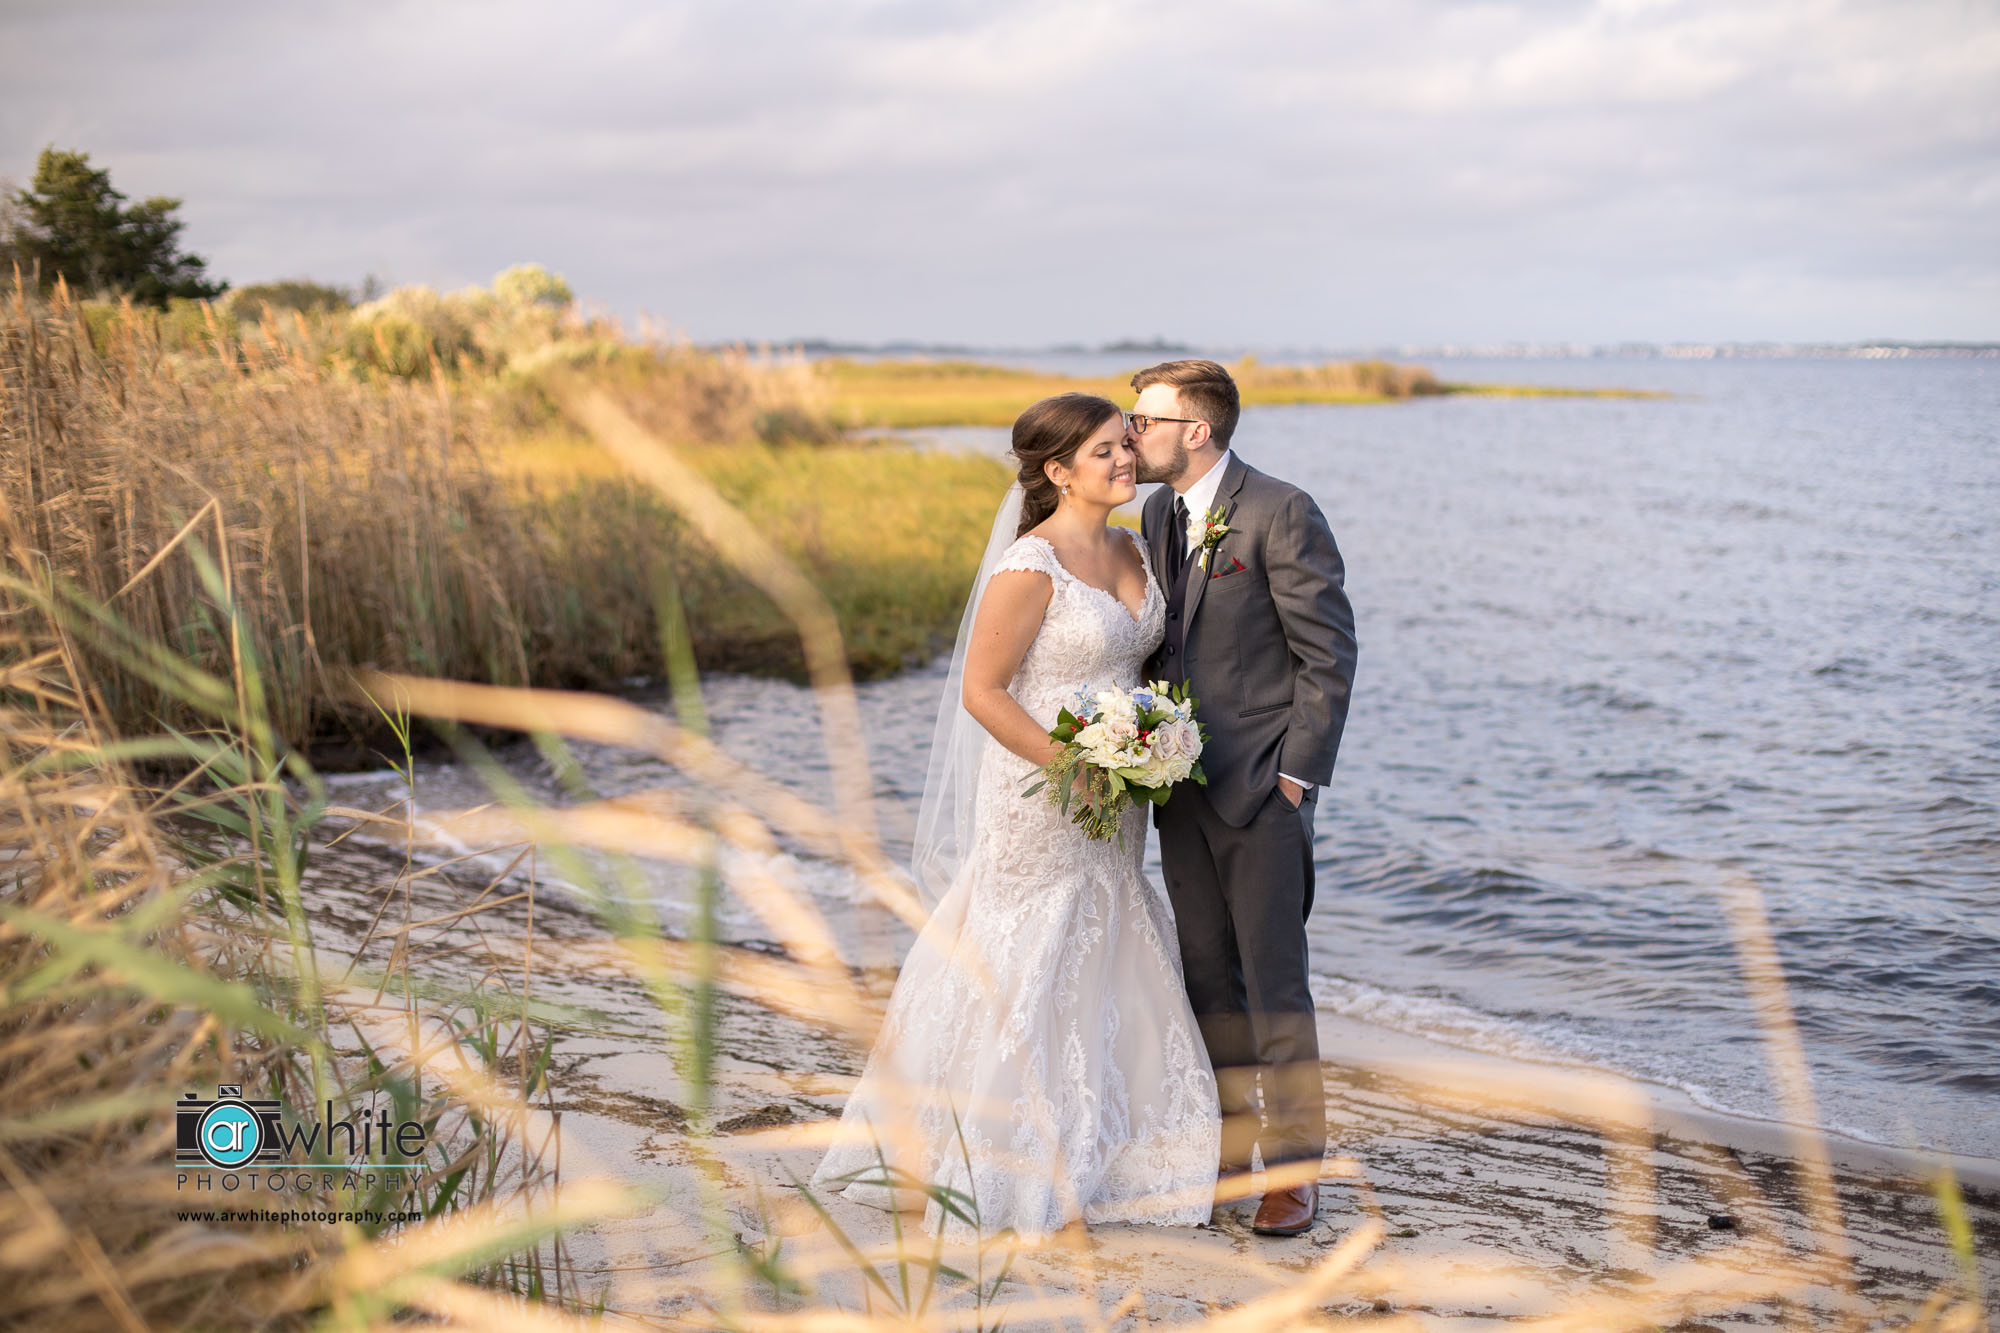 This adorable private beach is a short golf cart ride away at Lighthouse Sound, Maryland's premier golf club wedding venue near Ocean City, Md.